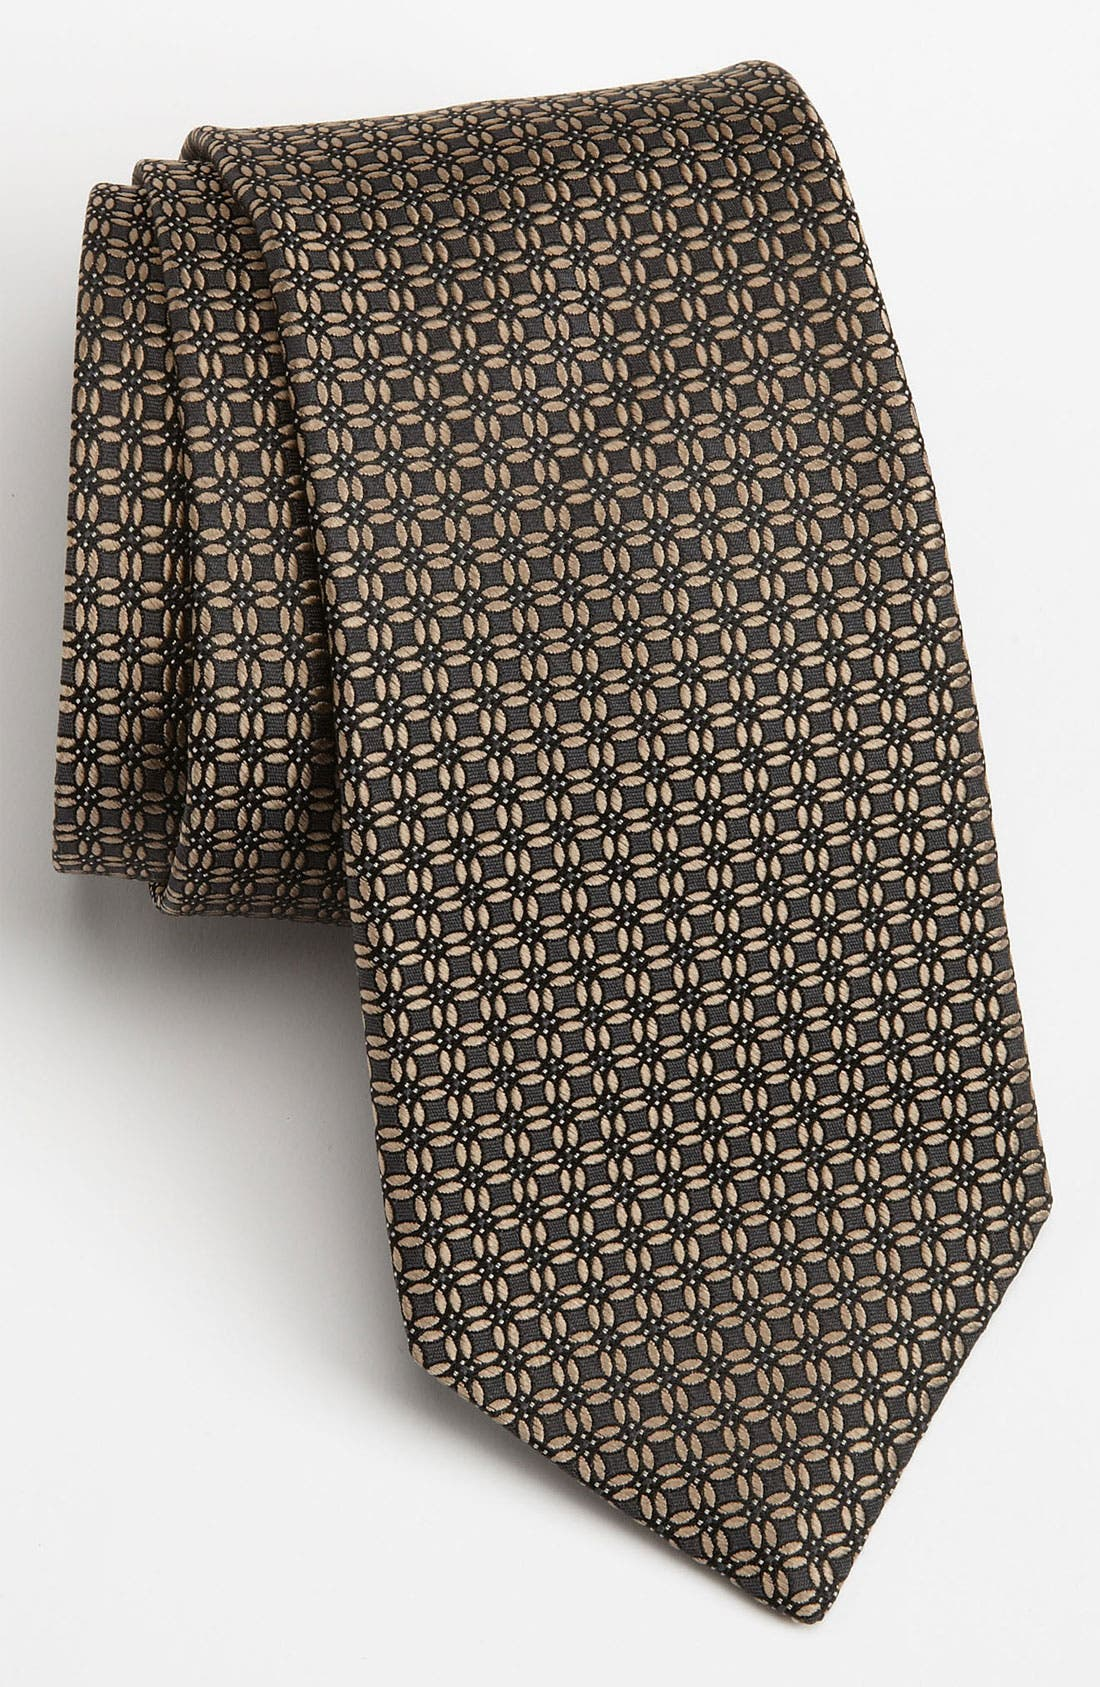 Alternate Image 1 Selected - Michael Kors Woven Silk Tie